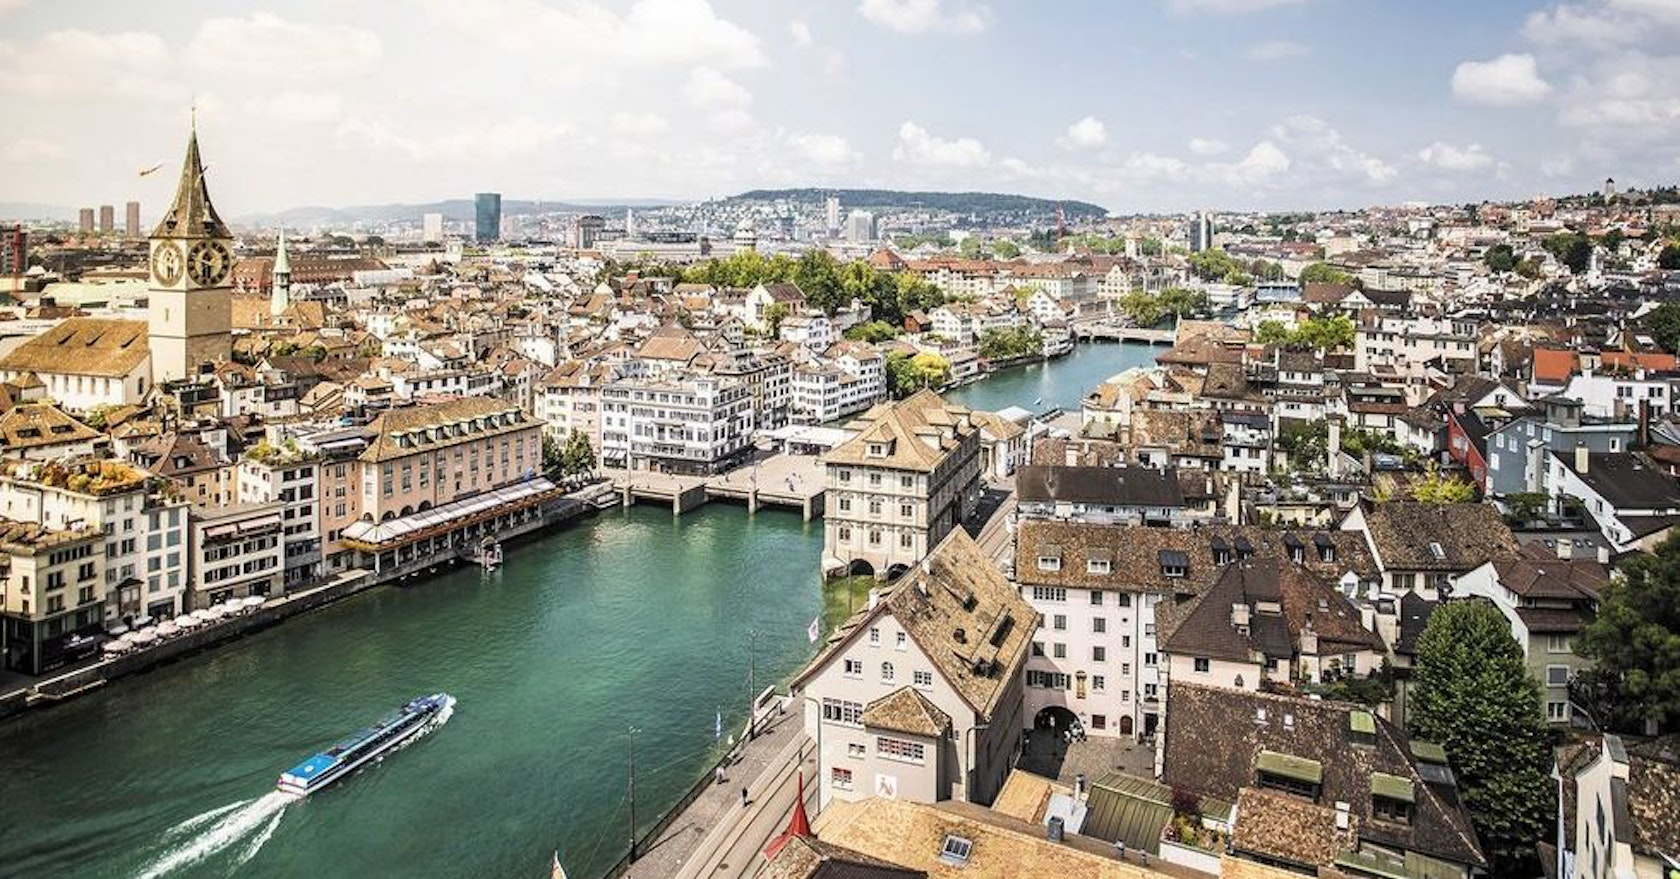 Get to know Zurich's quirky and vibrant new district